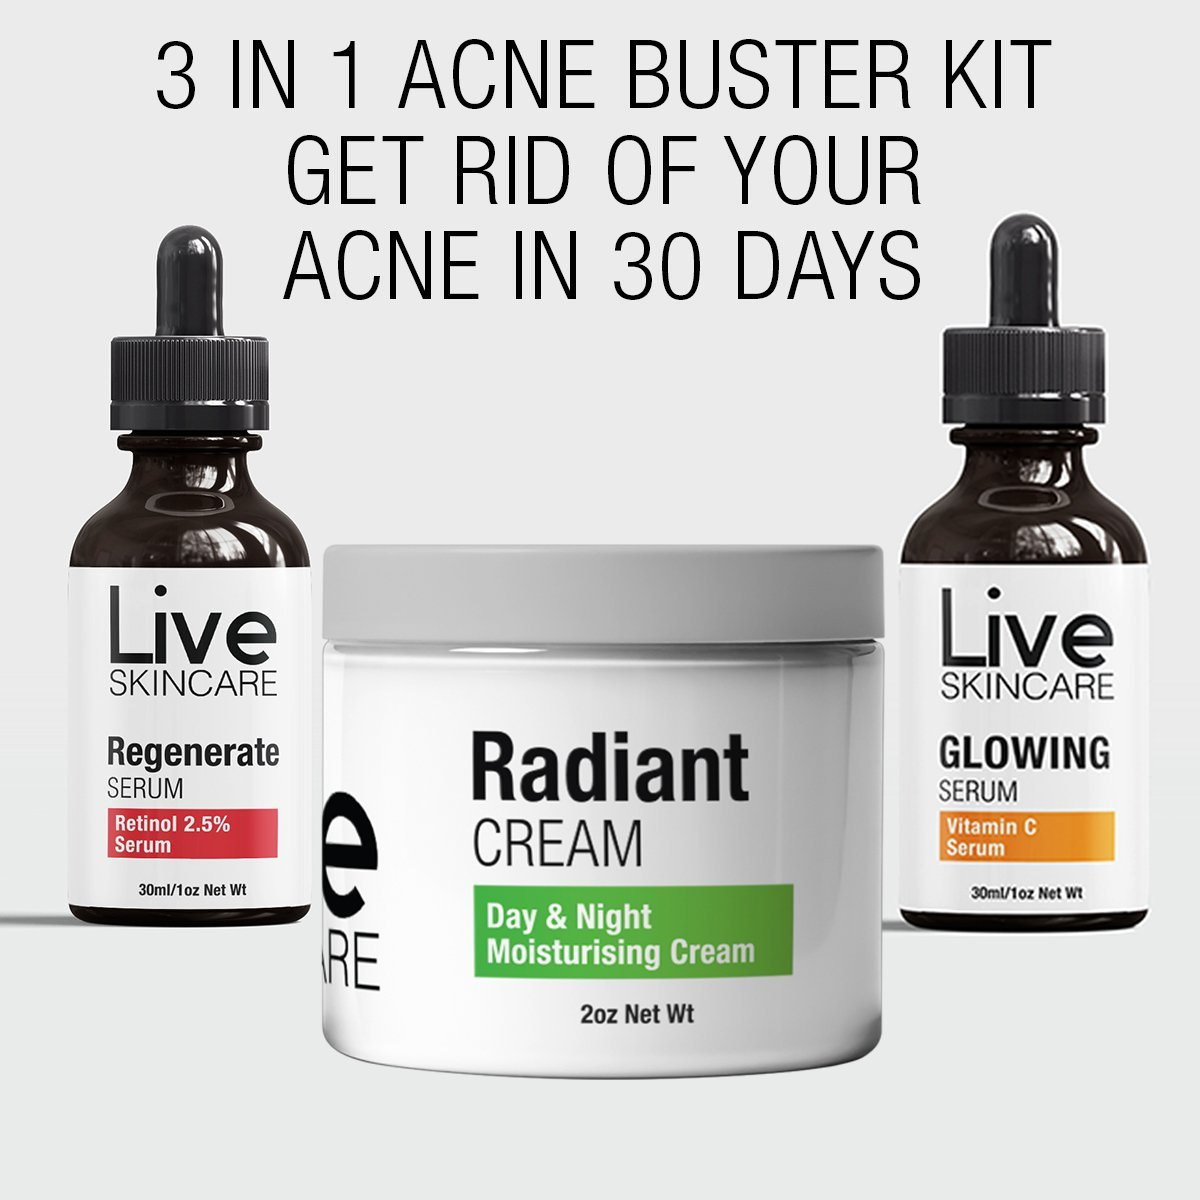 [ON SALE TODAY] Acne Buster 3 in 1 Kit!